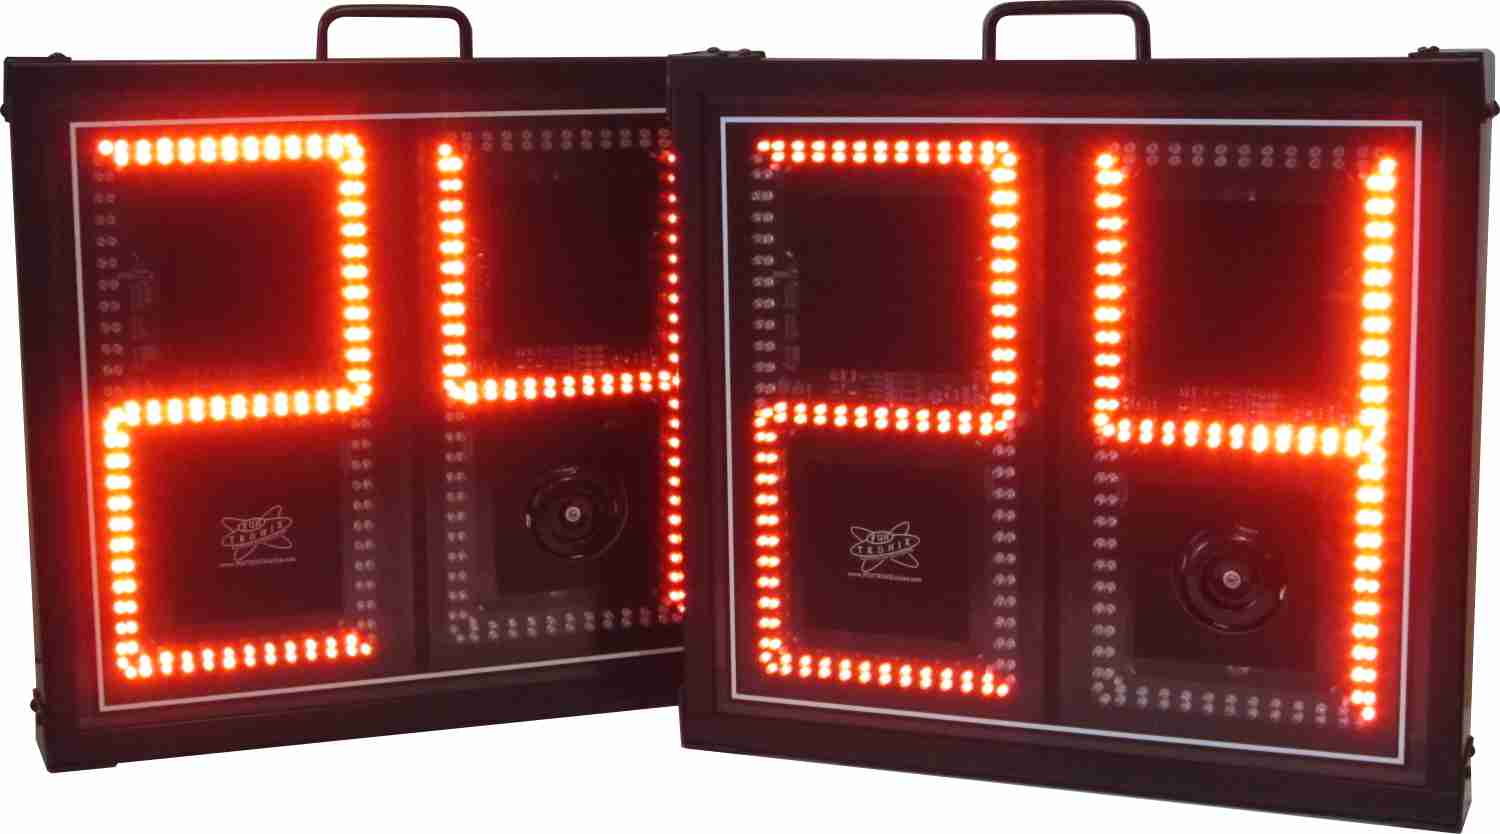 12-inch shot clocks